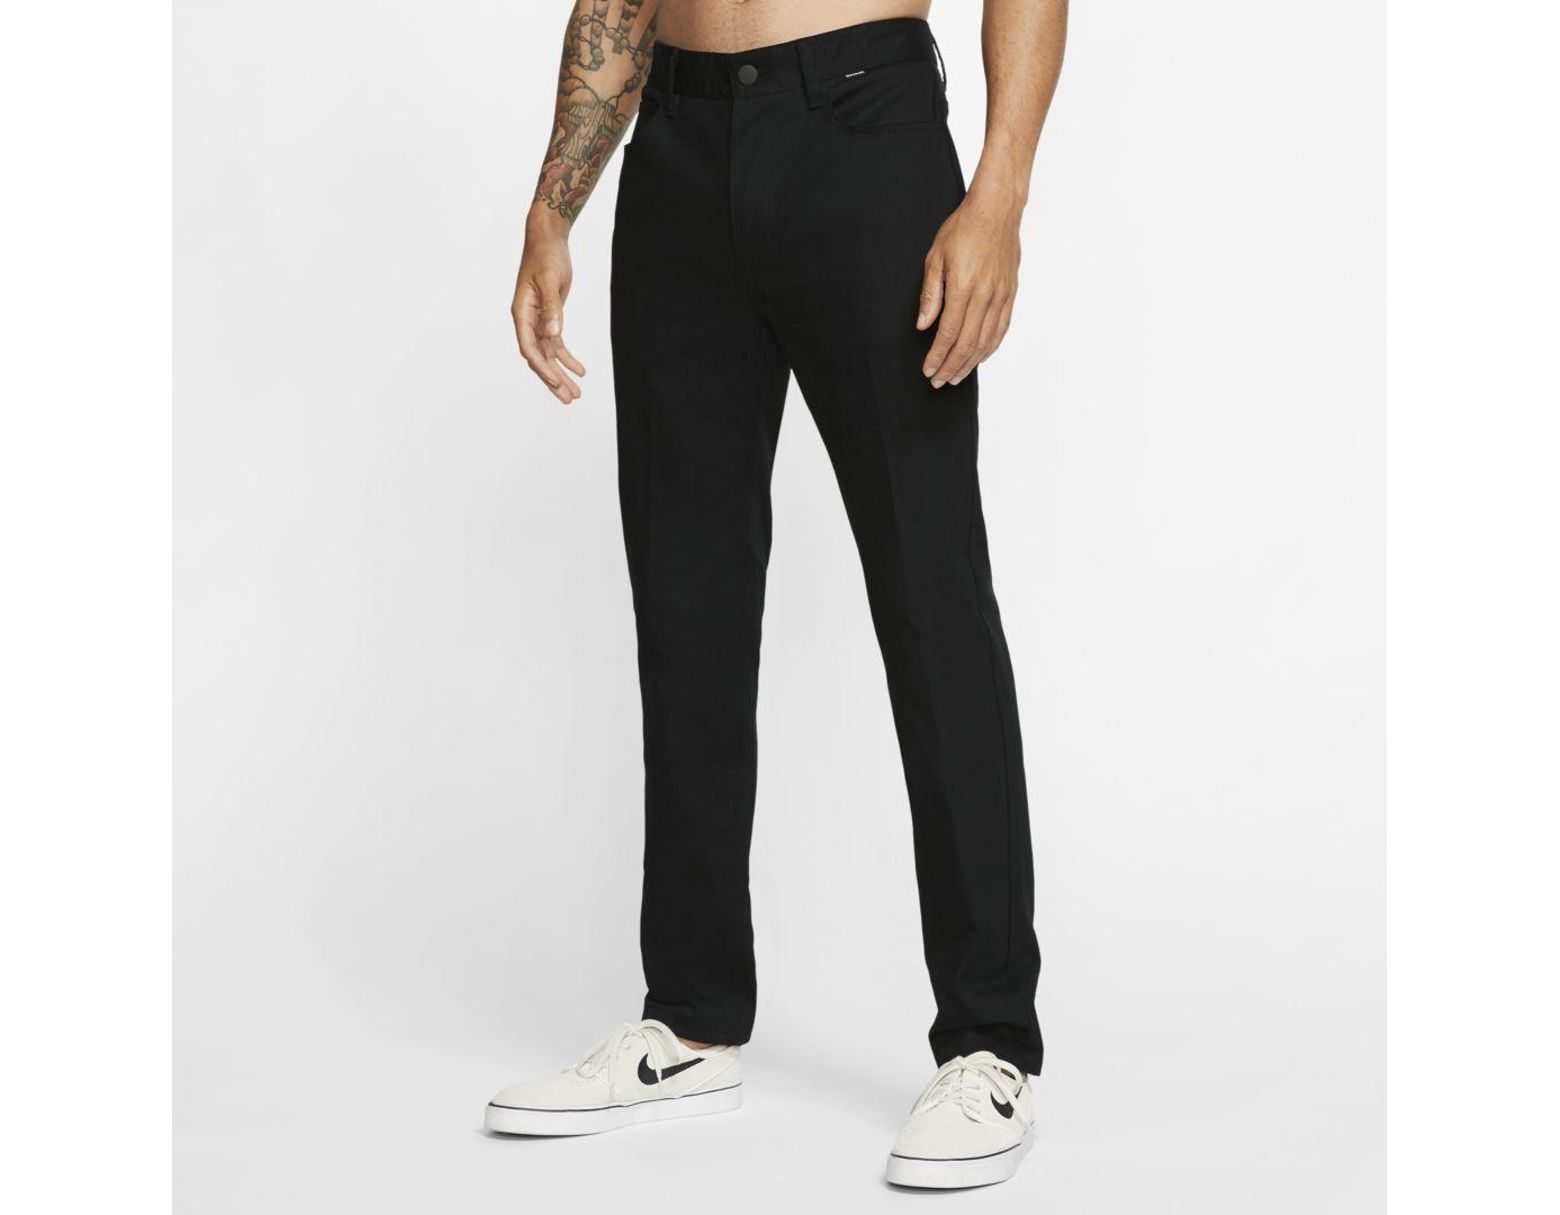 Nike Men In Black Hurley M 84 Cotton For Pants Lyst Storm dxoBeC